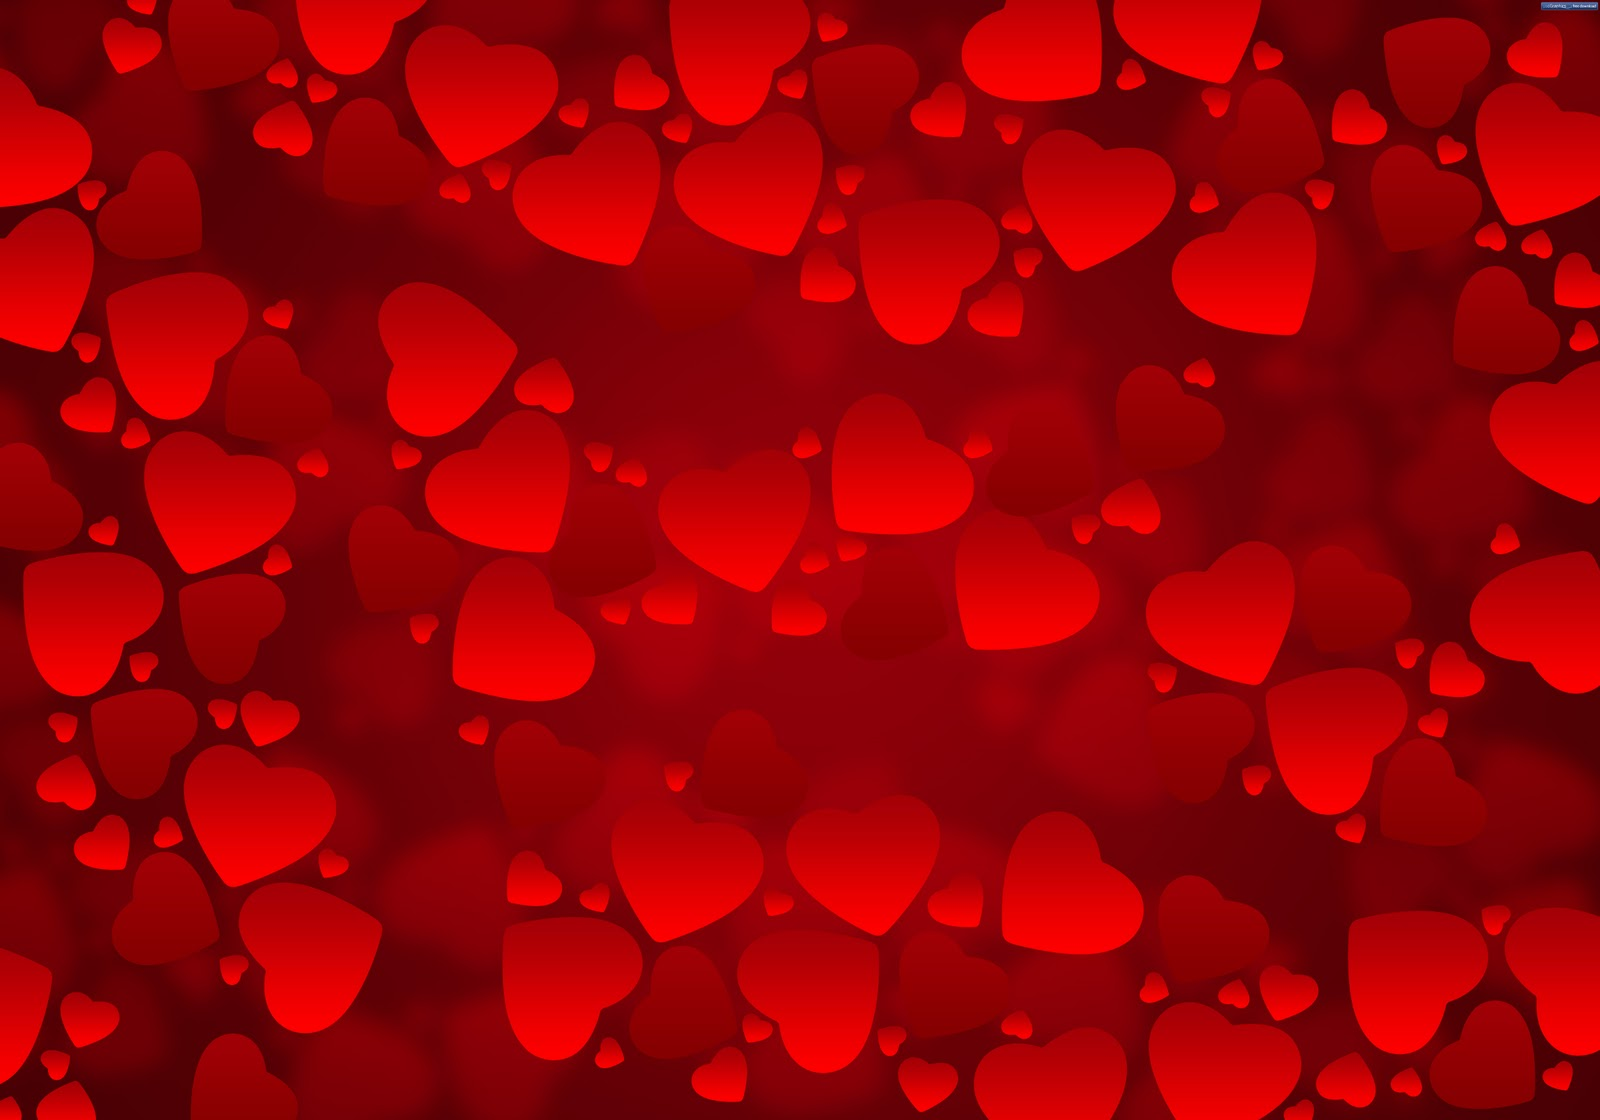 hearts-background